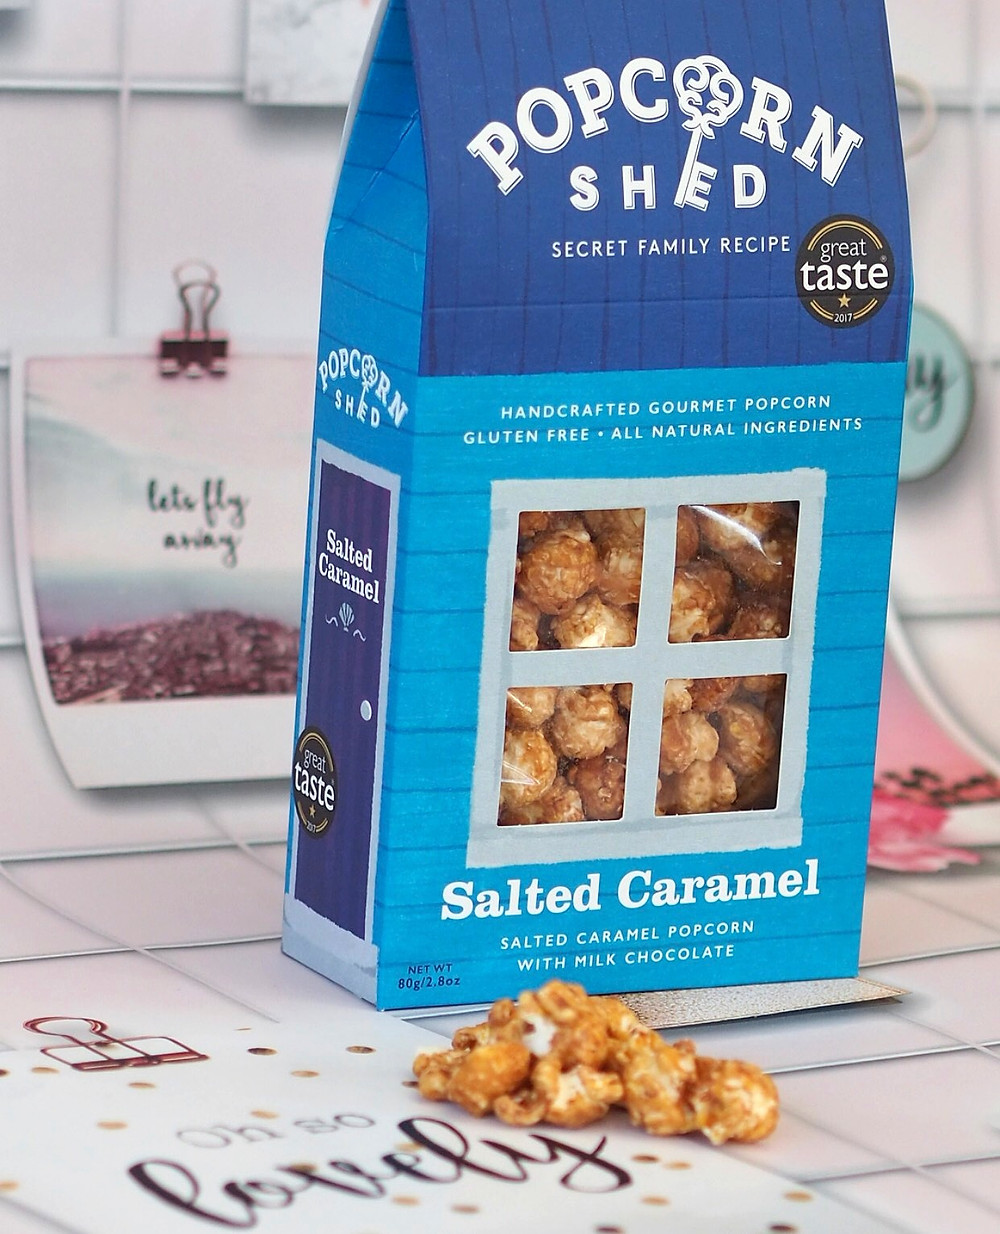 Popcorn Shed- Shed packaging